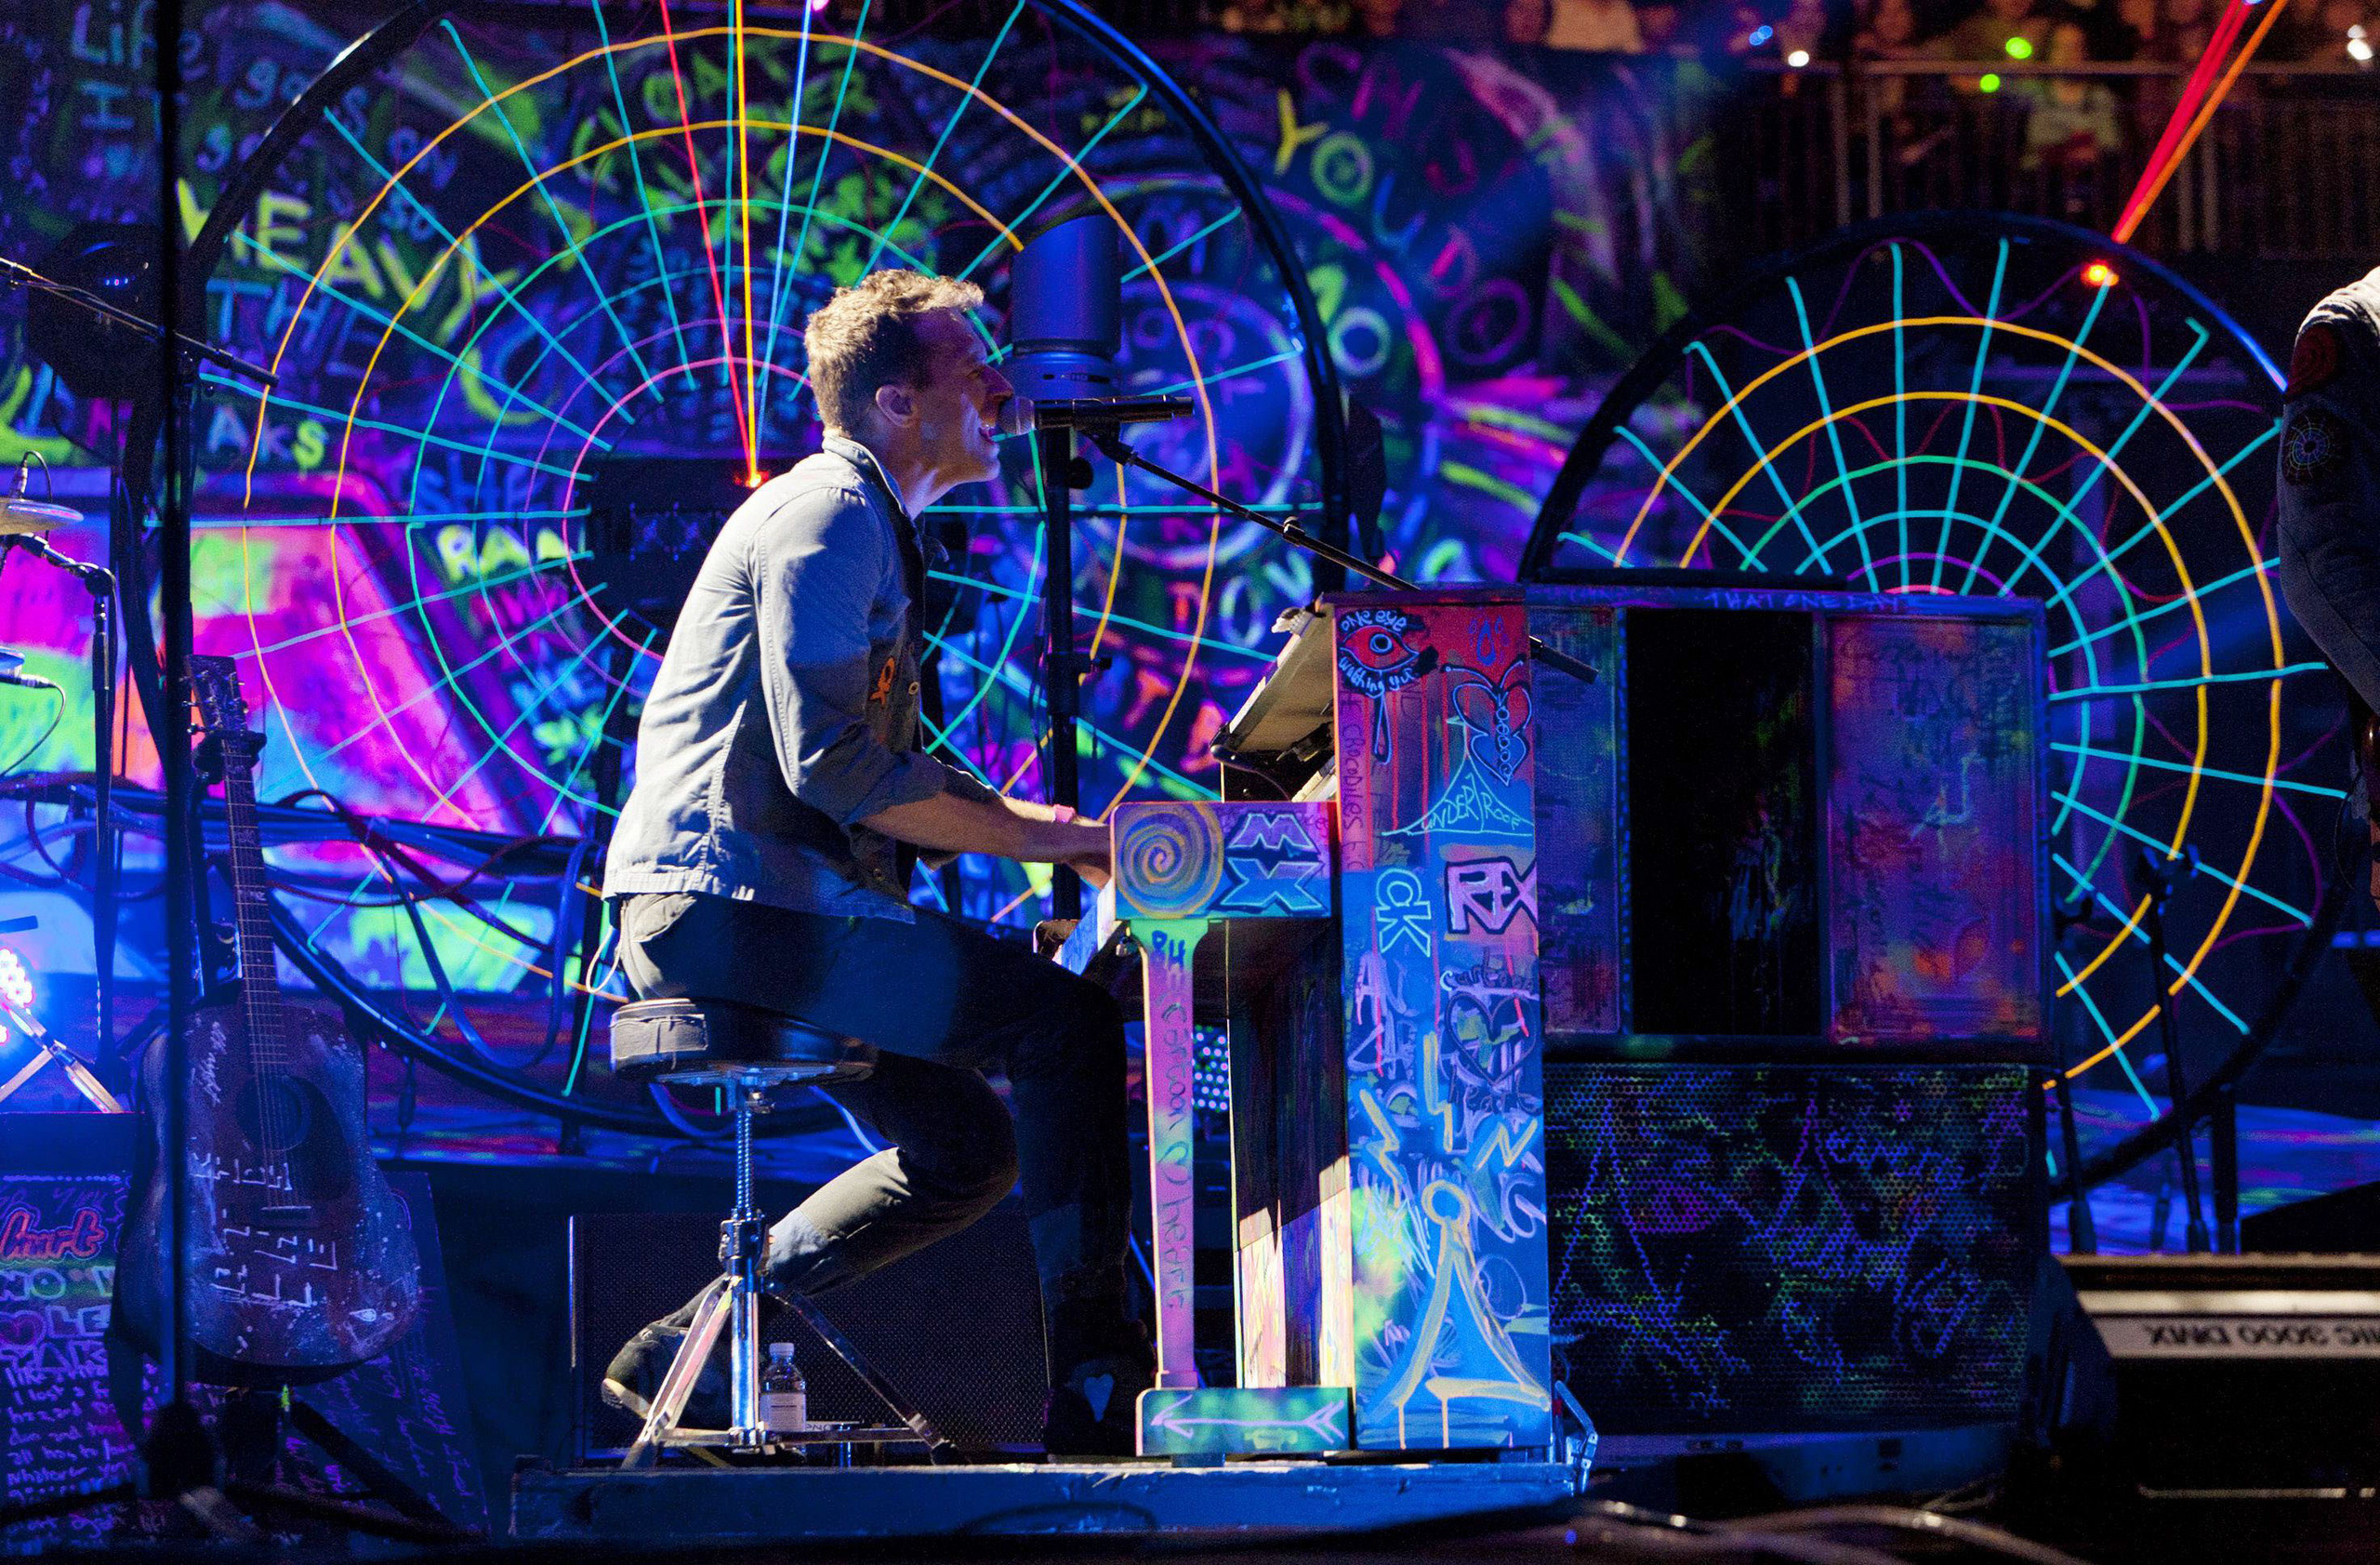 Mylo xyloto wallpaper hd 2560x1683 hd wallpaper and background photos of mylo xyloto tour december for fans of coldplay images voltagebd Choice Image